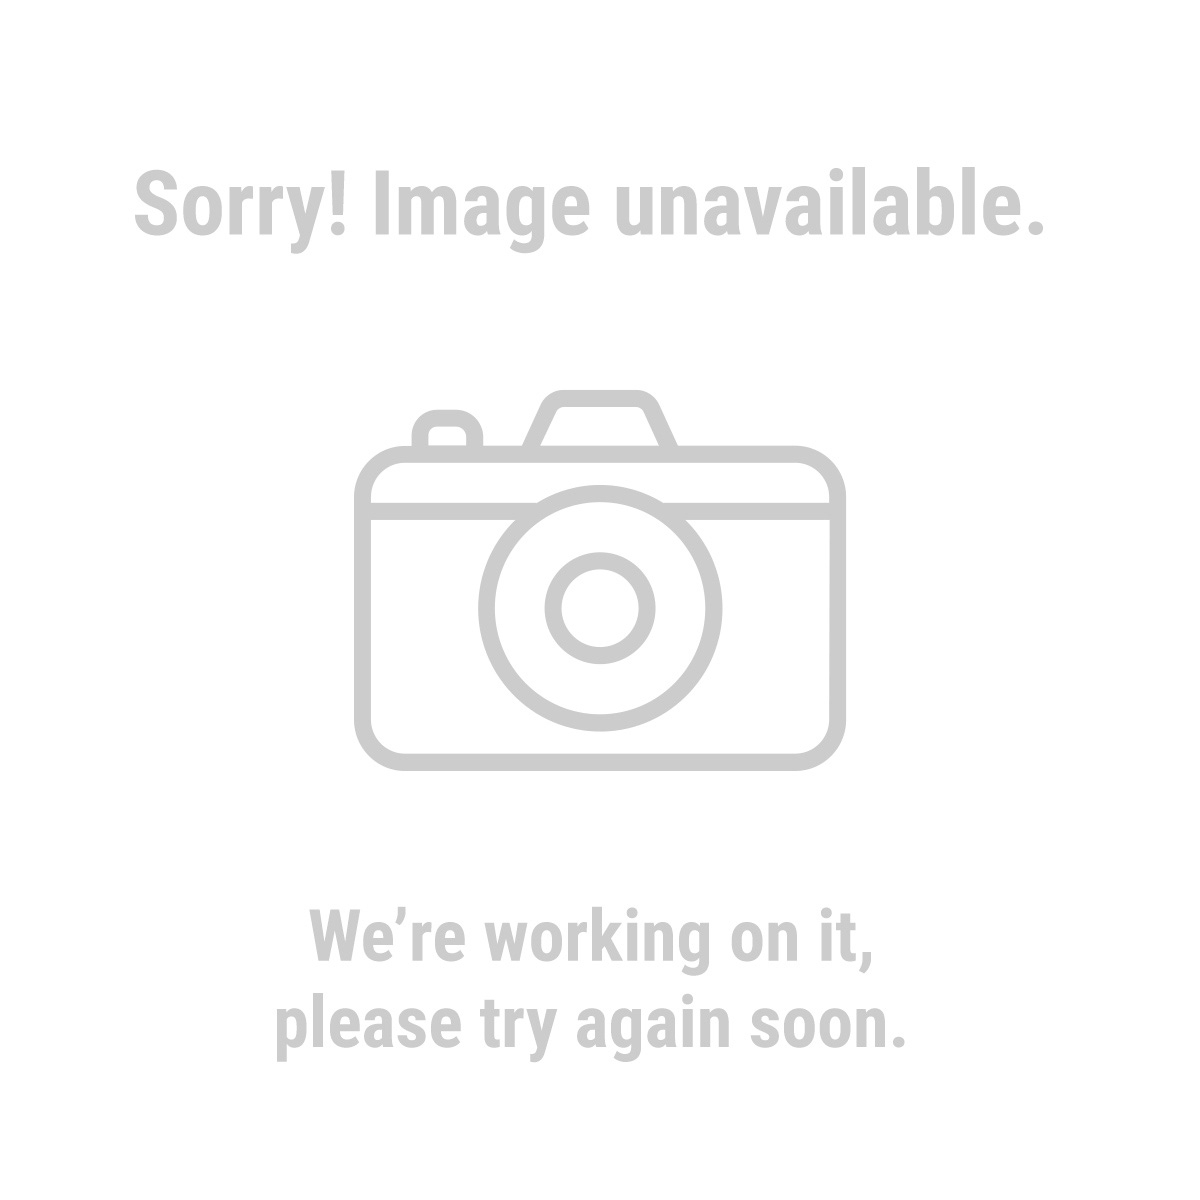 "94152 20 Piece 7"" Hook & Loop Cable Ties"